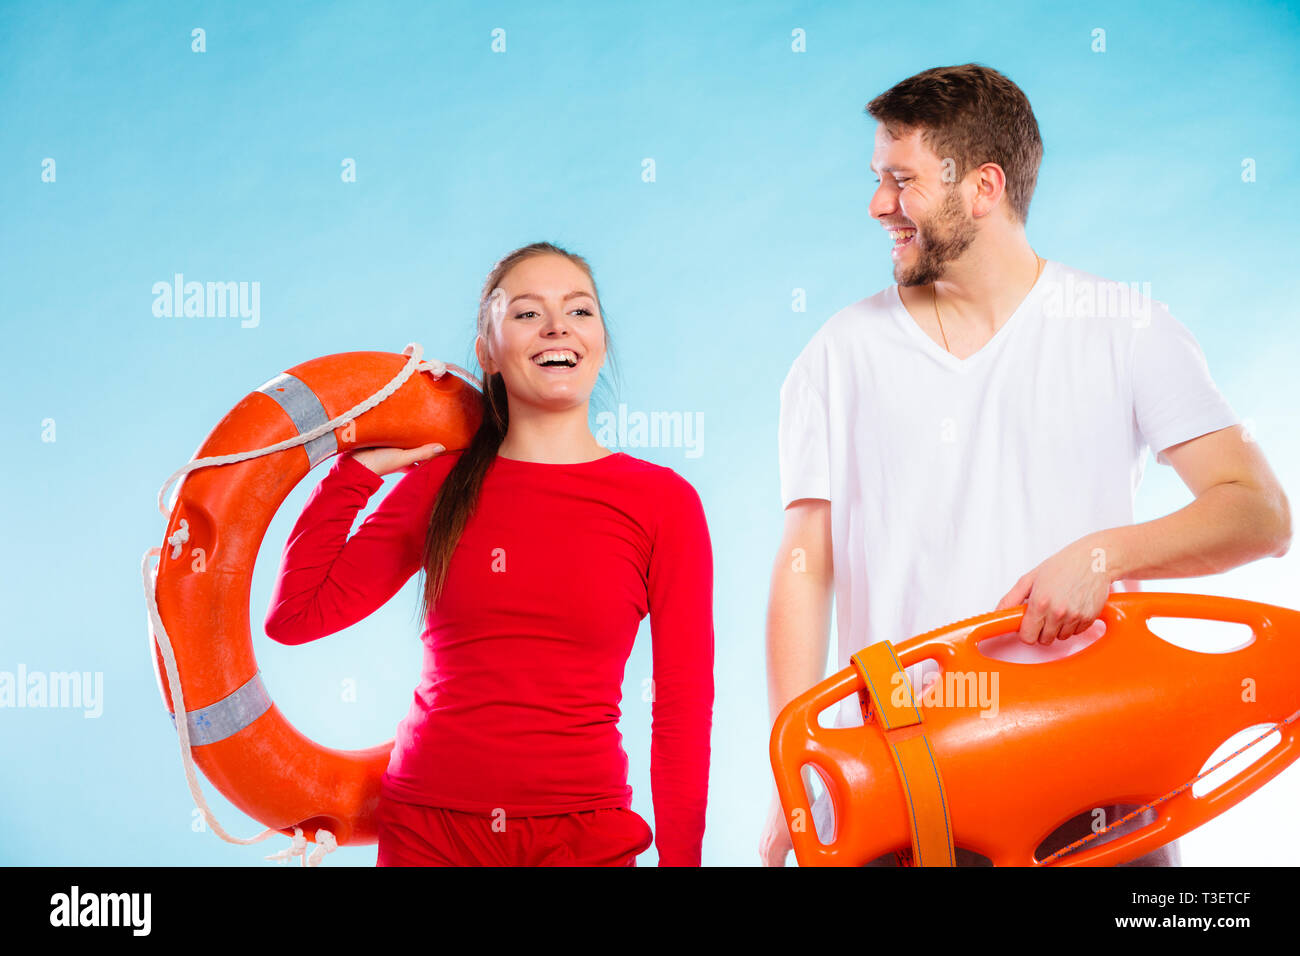 f00eec8c432 Accident prevention and water rescue. Young man and woman lifeguard couple  on duty holding buoy lifesaver equipment on blue